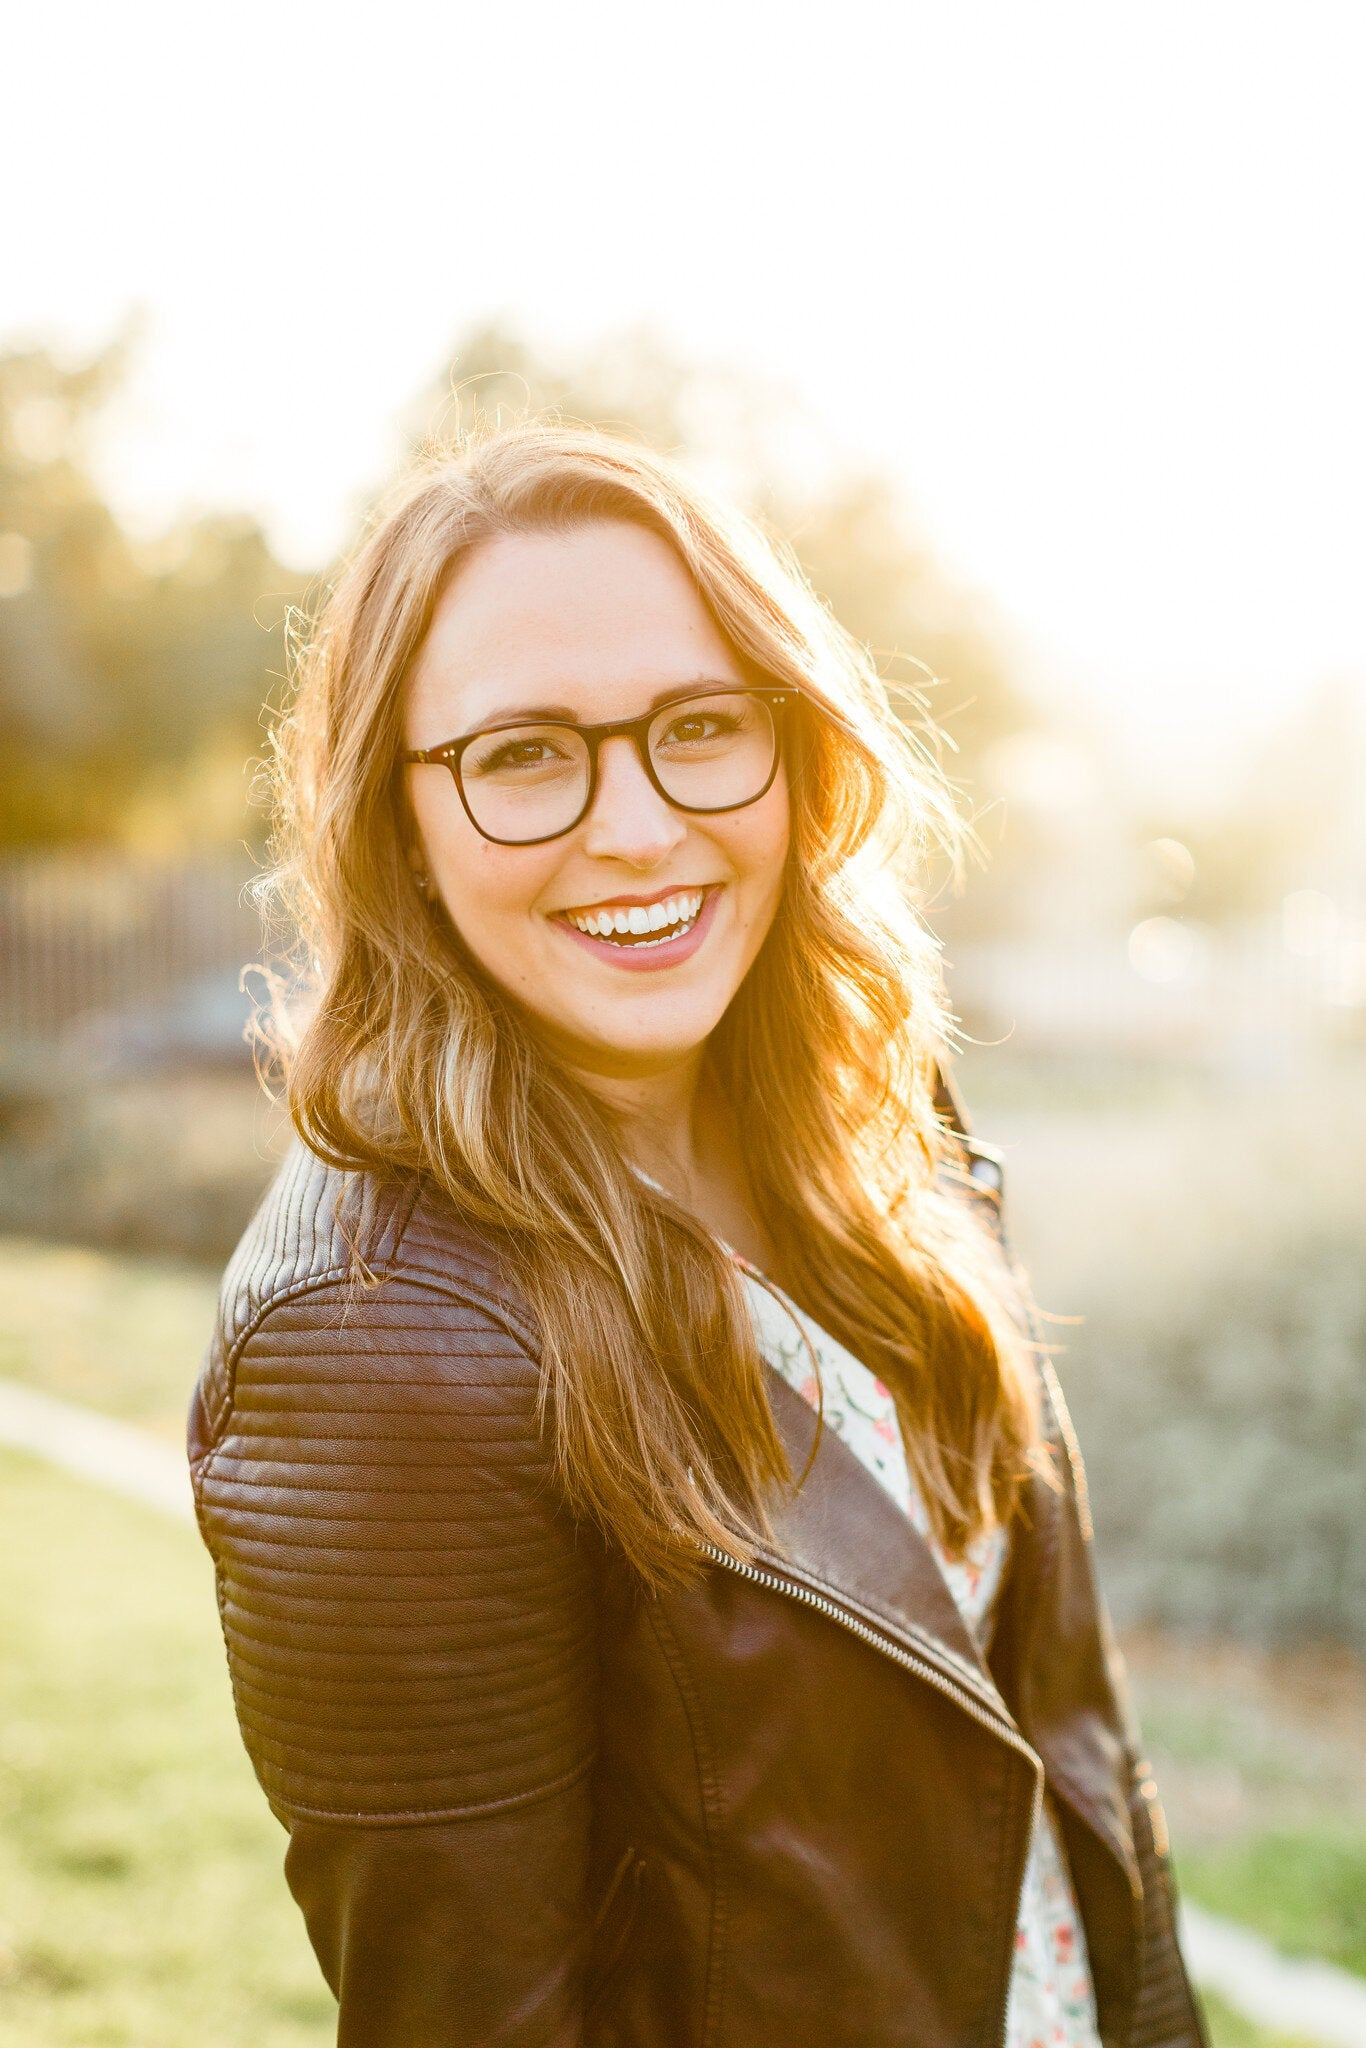 A portrait of Natalie Franke, the Head of Community at HoneyBook (a client management software)